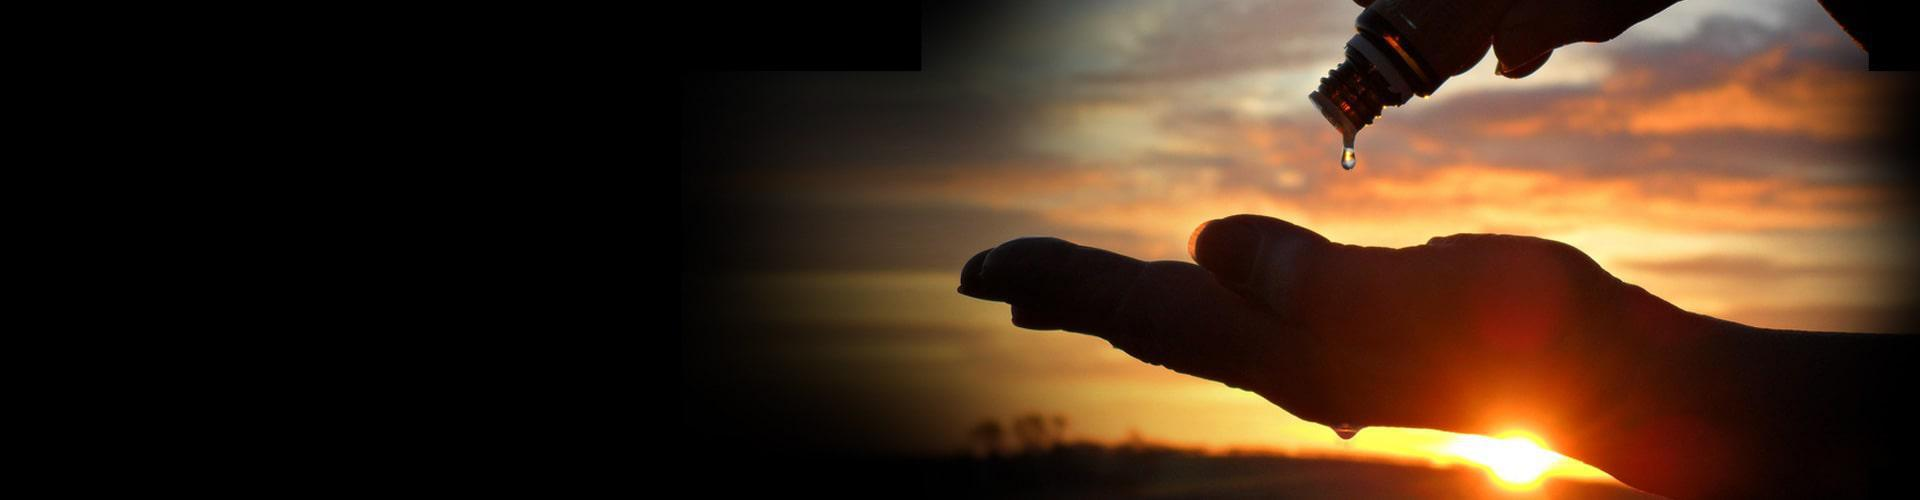 Elixinol CBD oil being dripped on a hand in front of a sunset